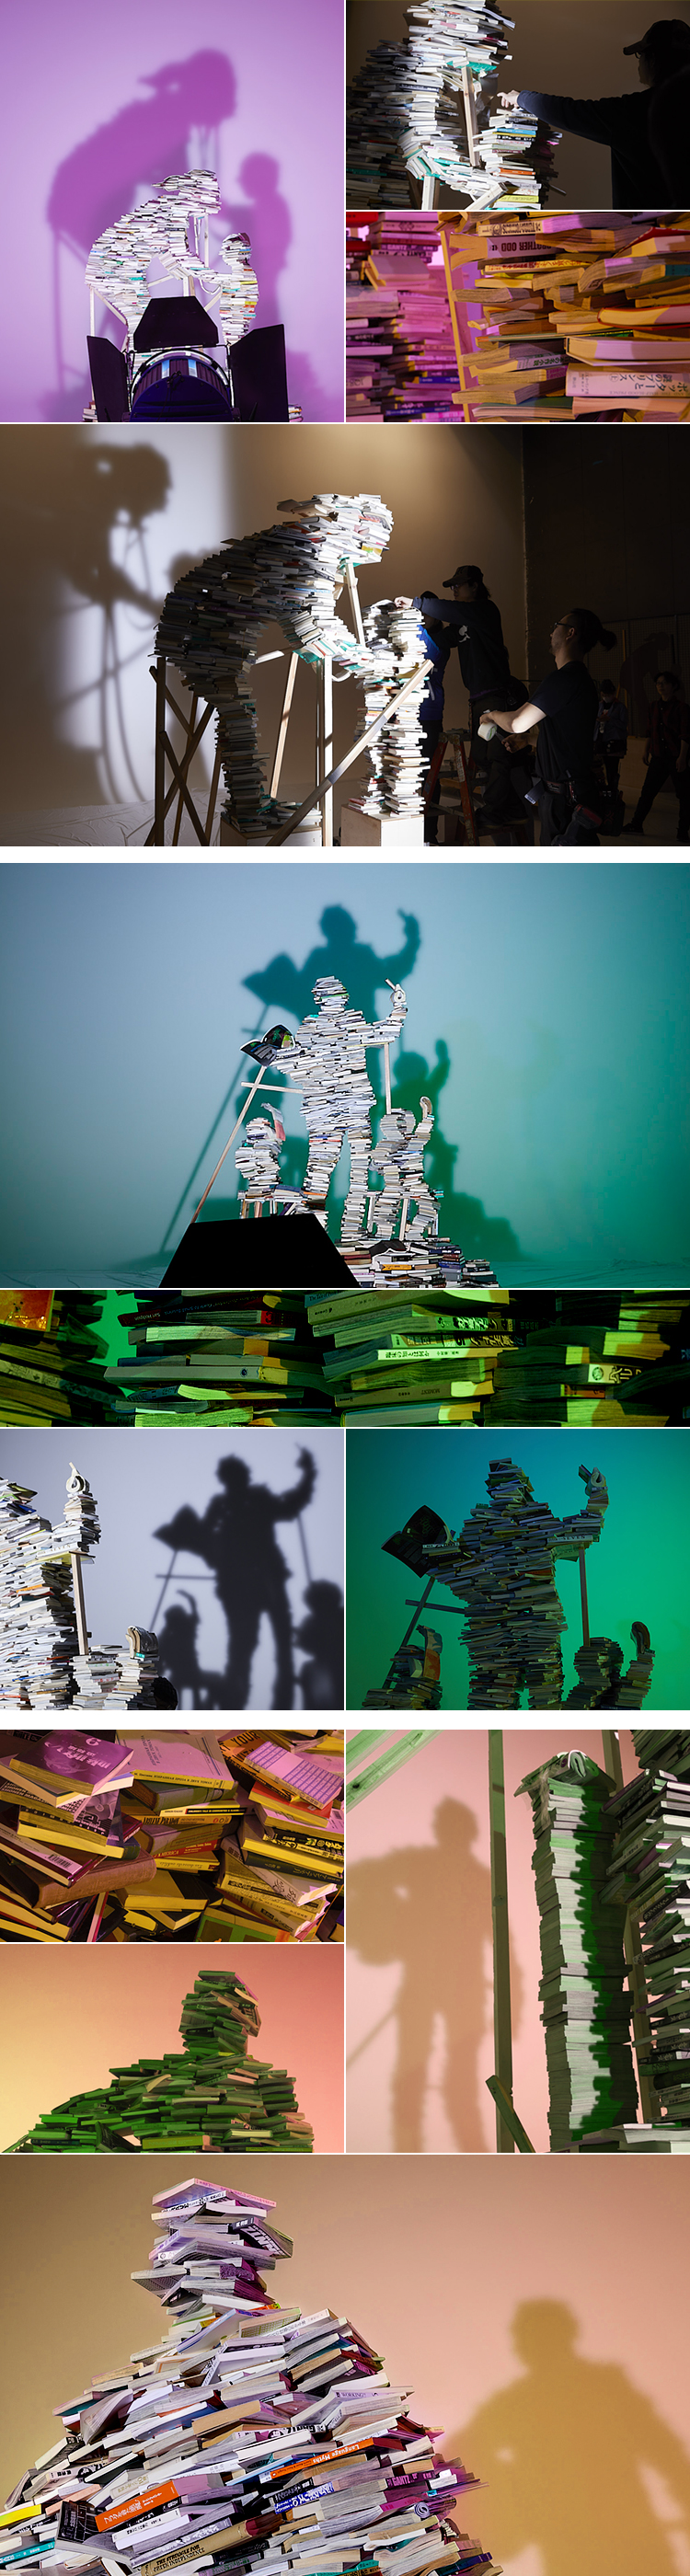 Photo:We created actual artworks using books and took photos.